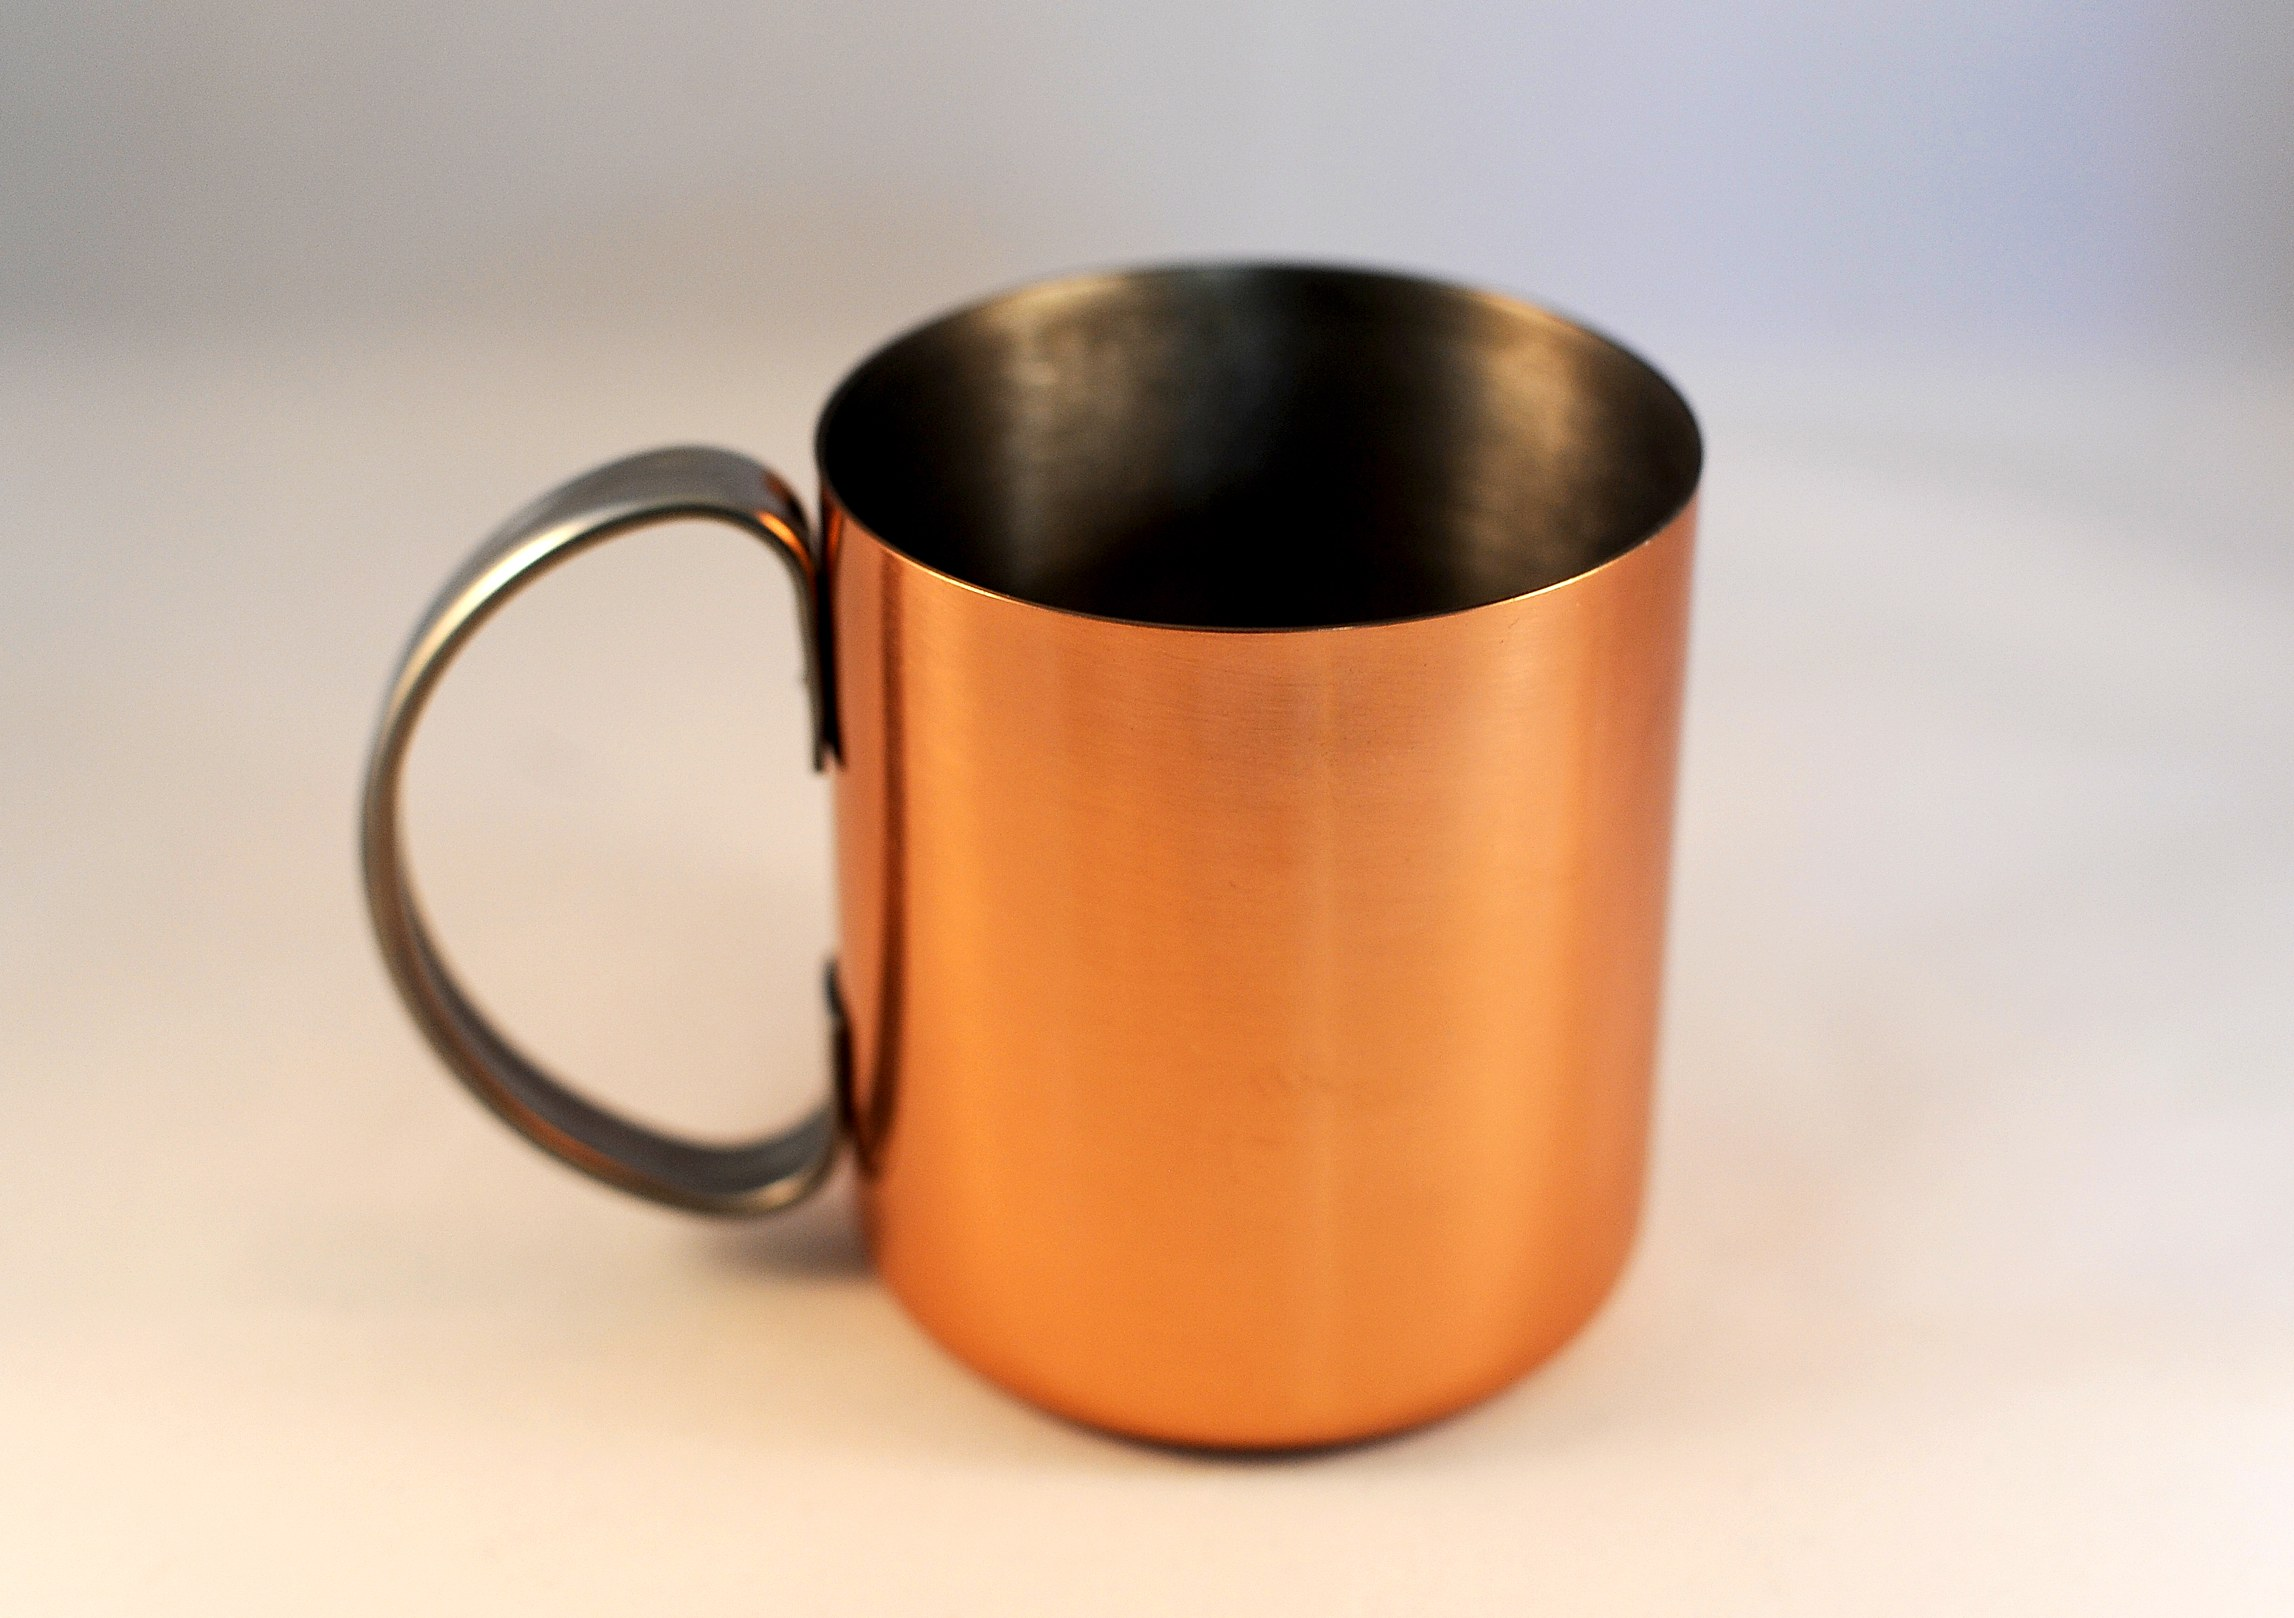 12 oz stainless steel copper moscow mule mug 183 copper mugs 183 online